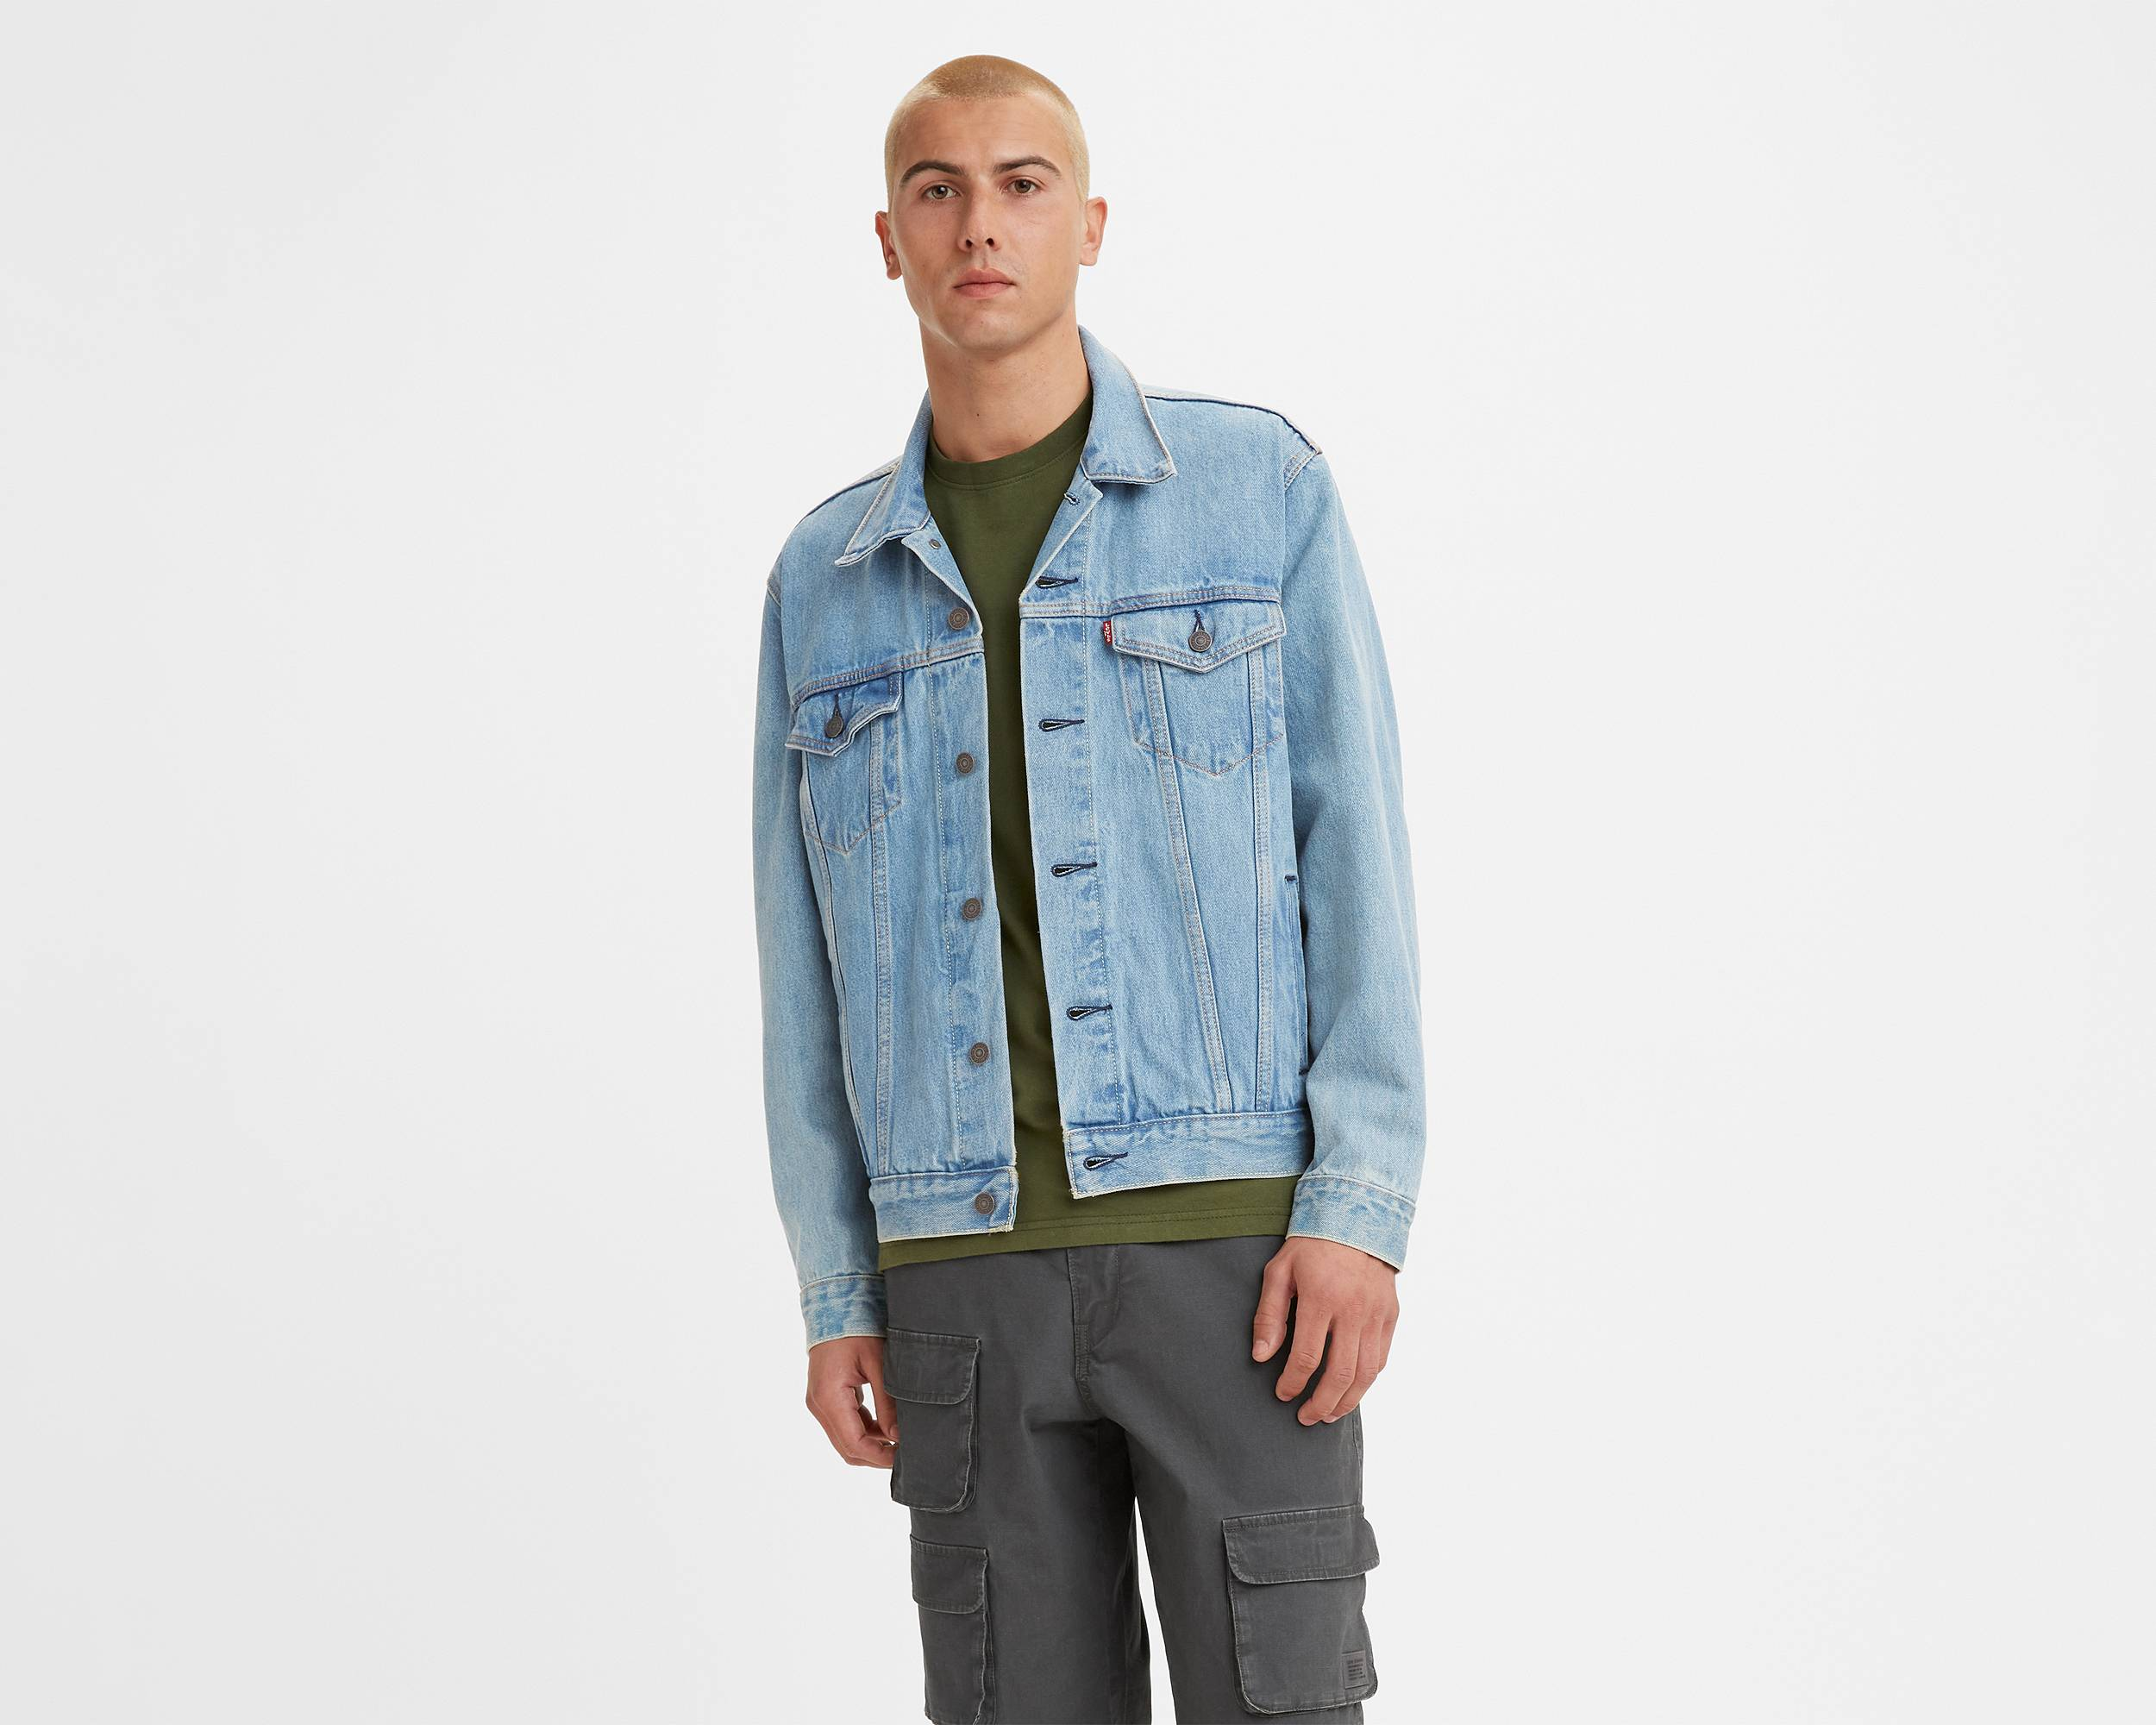 A.P.C.'s classic collection of Japanese raw, selvedge-denim in their classic New Standard cut, has now also been updated with new styles and washes; including their famous denim jeans fitted for both men and for women. Shop A.P.C.'s full denim line, complete with jeans, jackets, skirts and shirts.